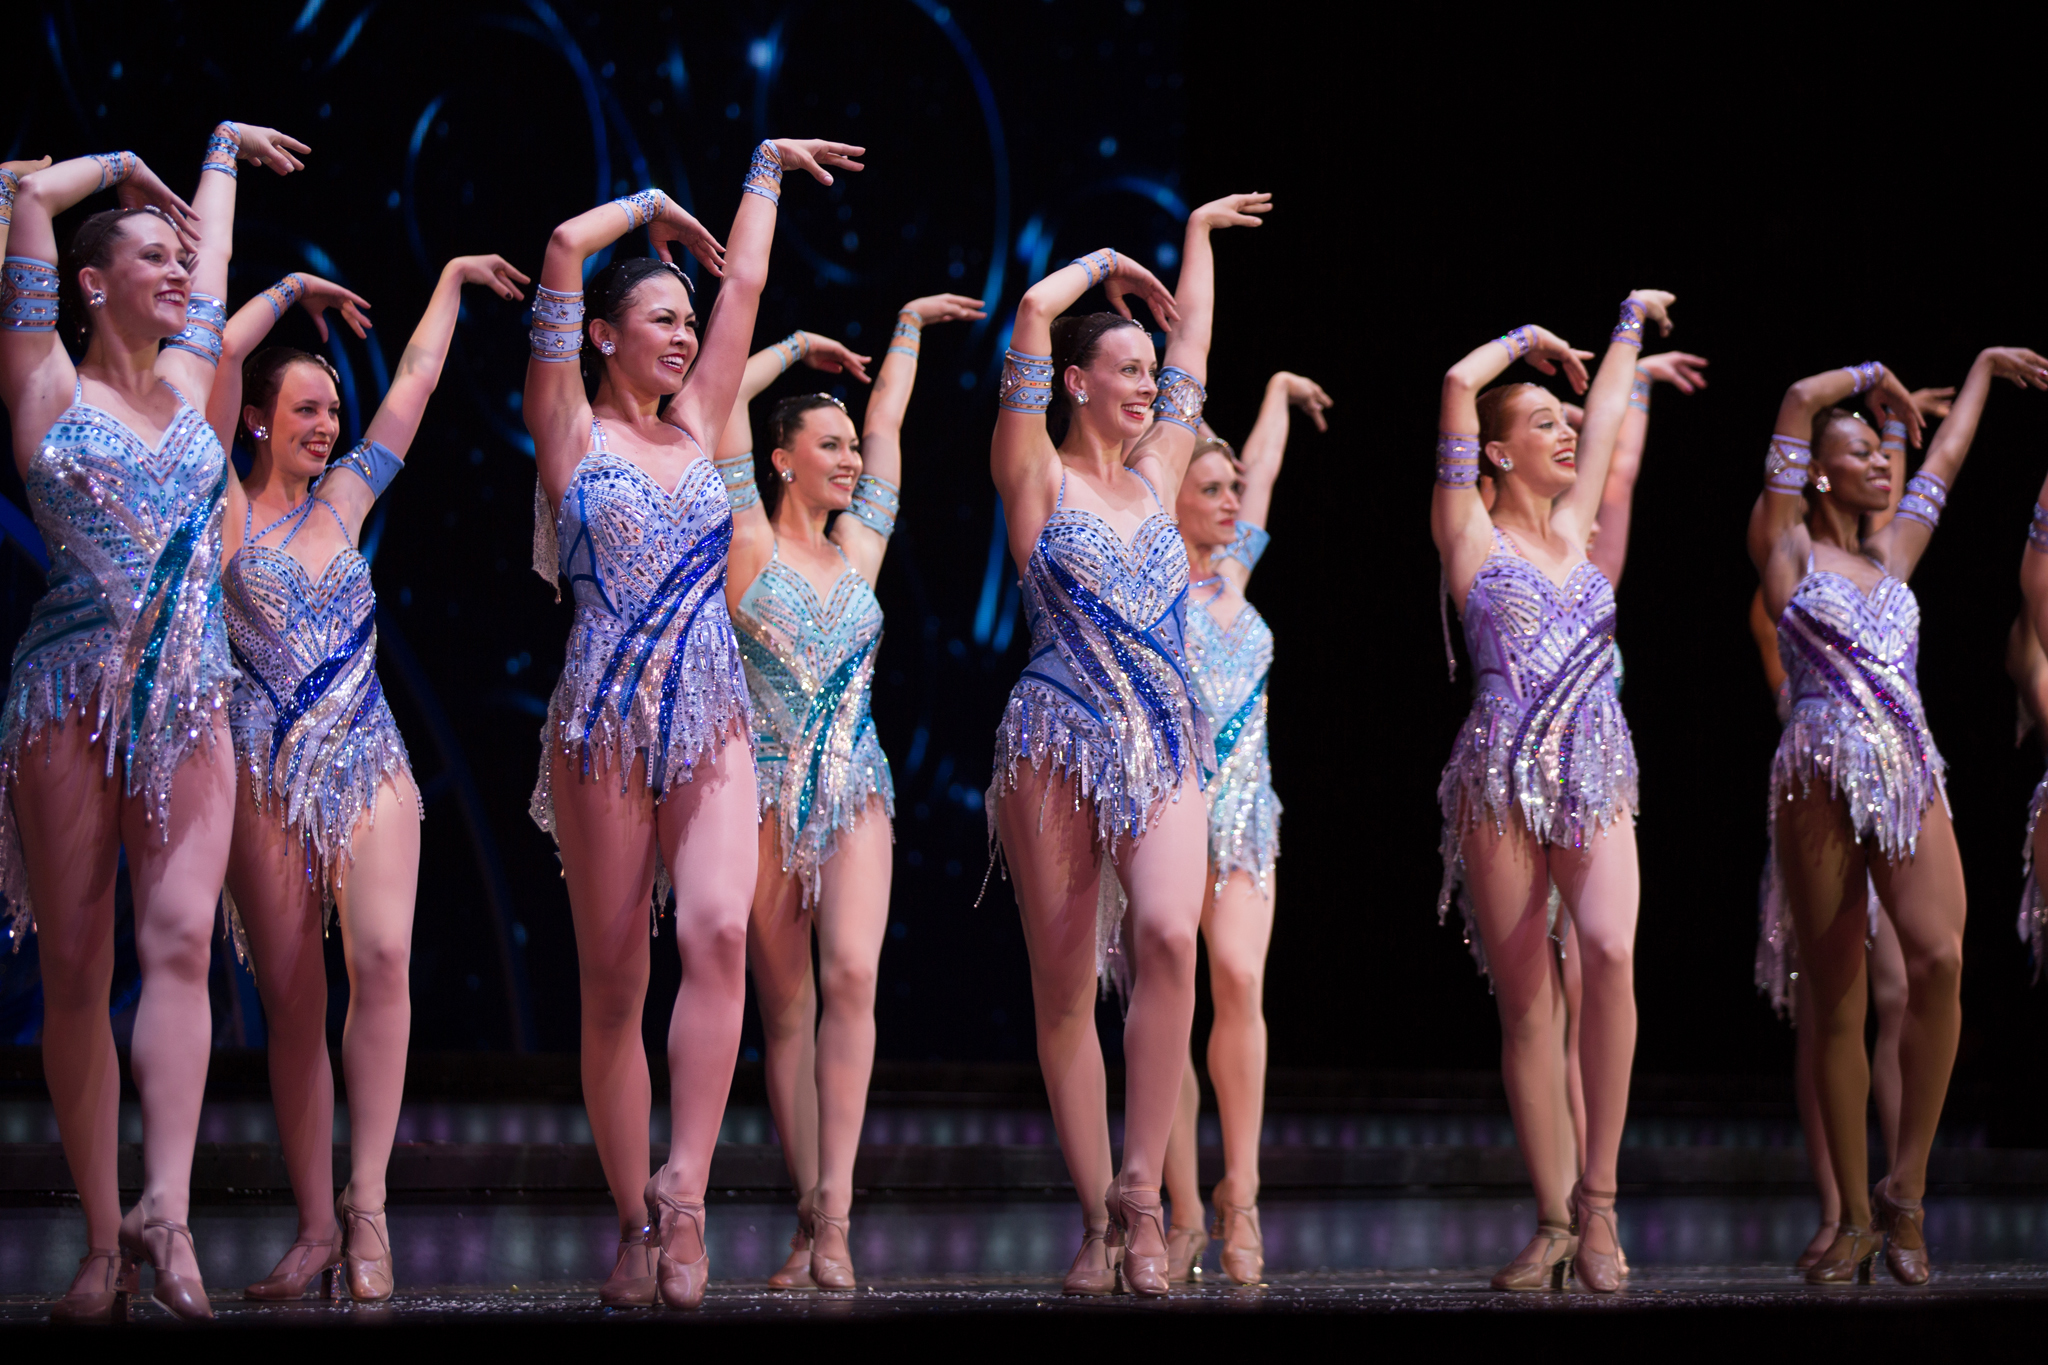 The Rockettes kick it up at Radio City